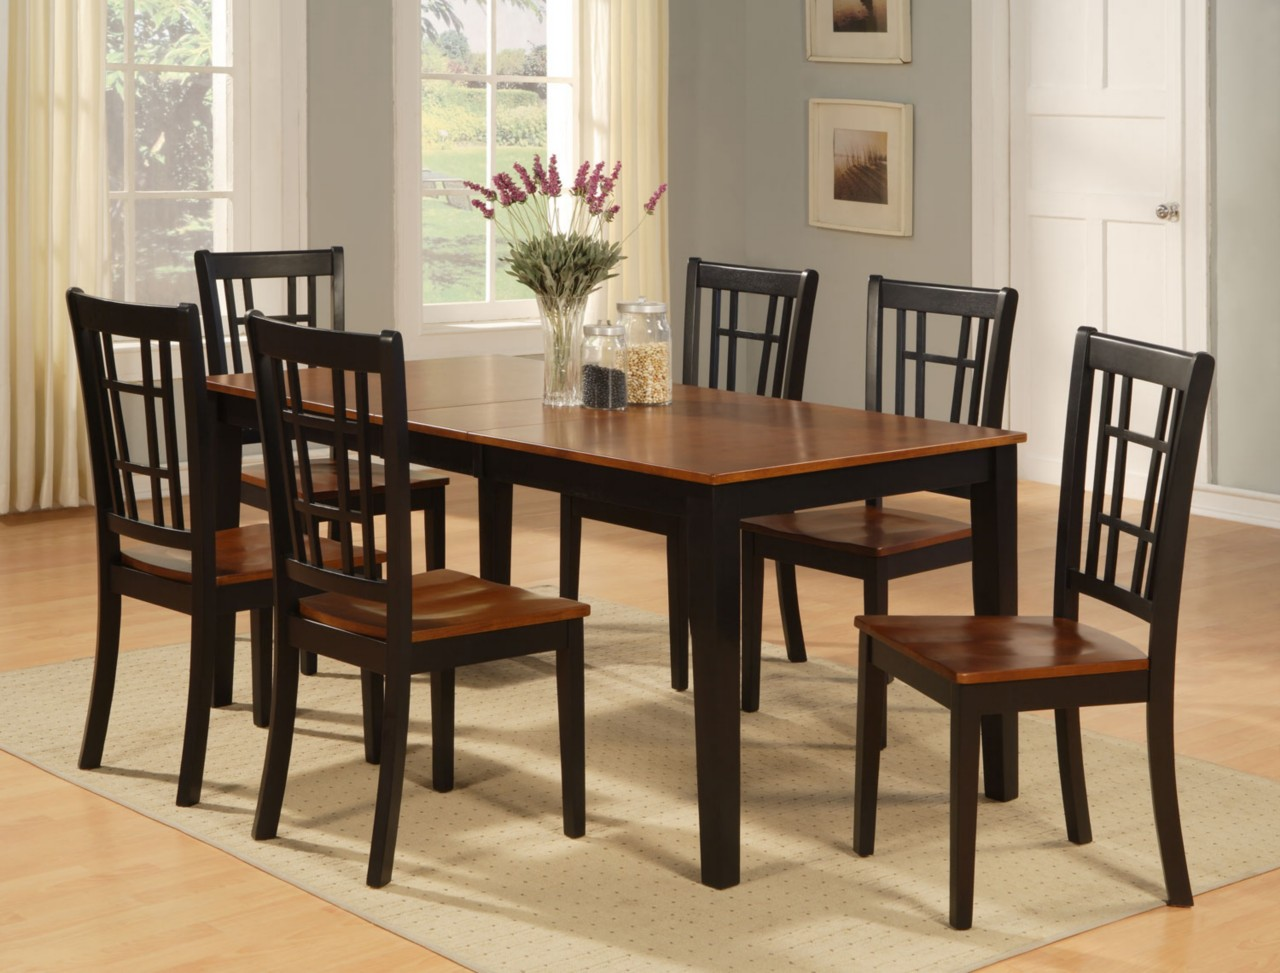 Dinette kitchen dining room set 7pc table and 6 chairs ebay for Dining room table and chair sets